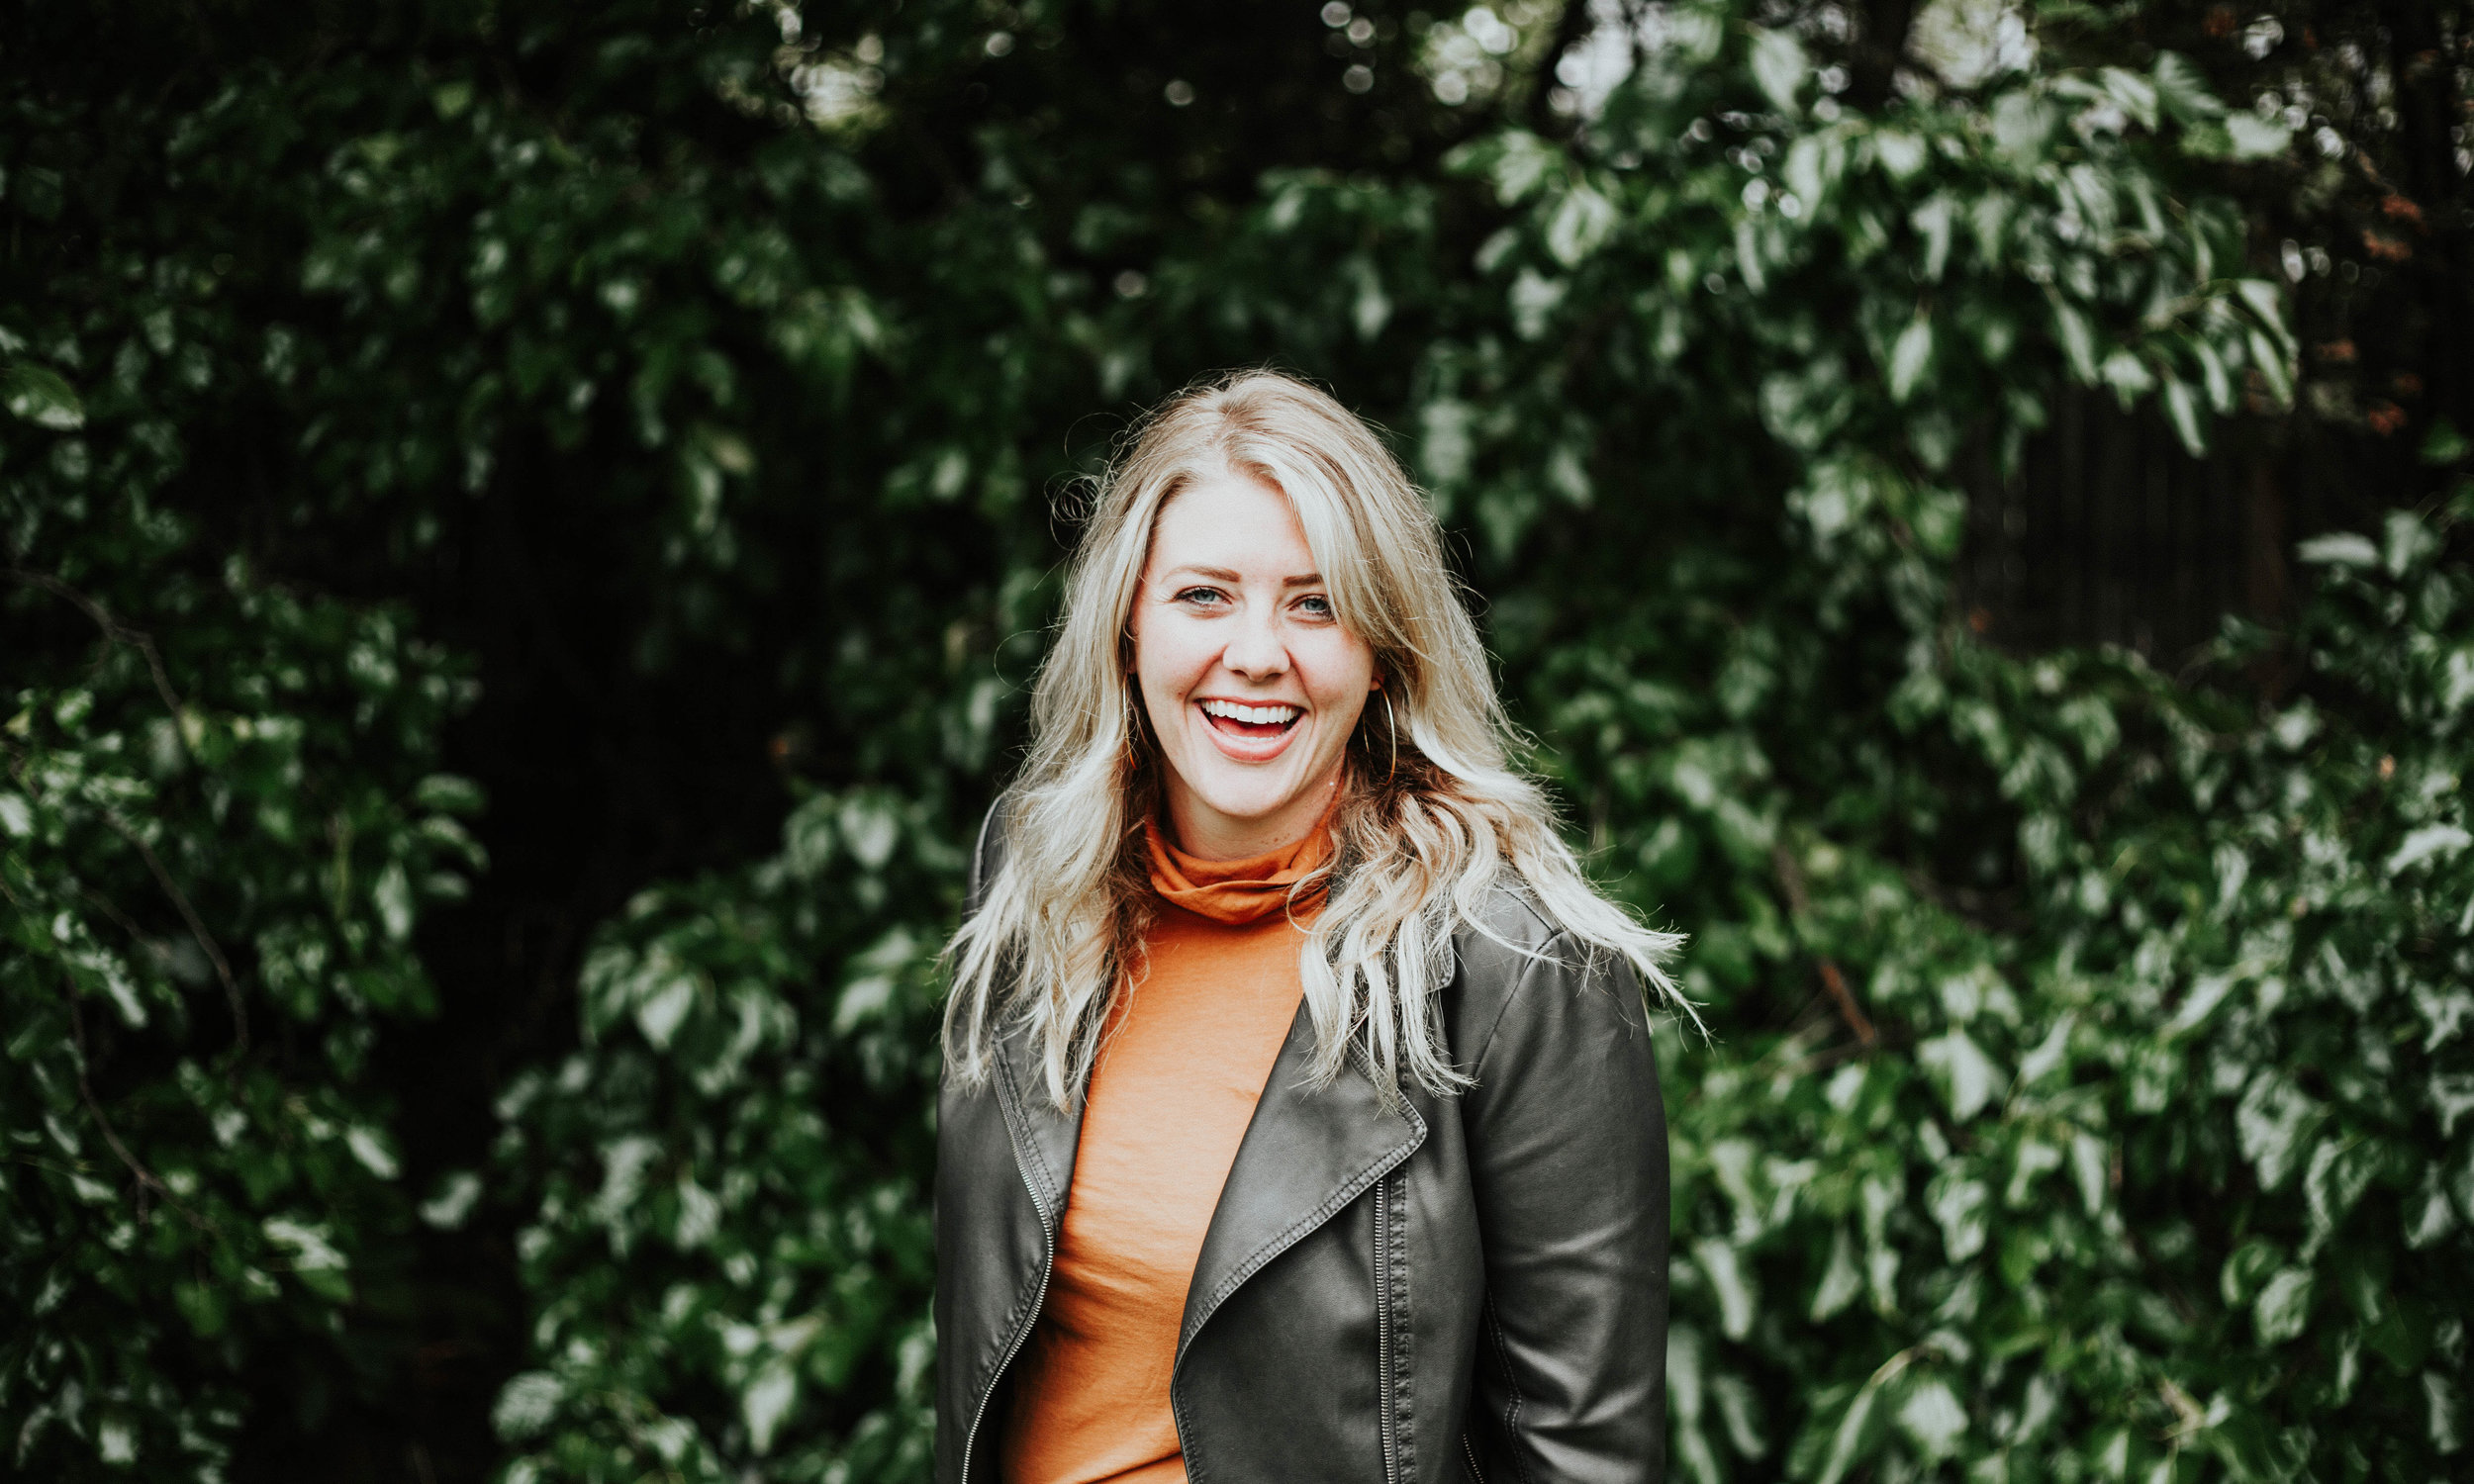 Anna Radcliffe, Pastor - I'm a writer, dreamer, and co-planter, pilot and pastor of City Chapel. I love laughing, dreaming about new things to do, and teaching others about Jesus. I am passionate about raising up women as leaders in the church, making space for people who feel marginalized, and most of all walking alongside believers of Jesus Christ. #thisiscitychapel.